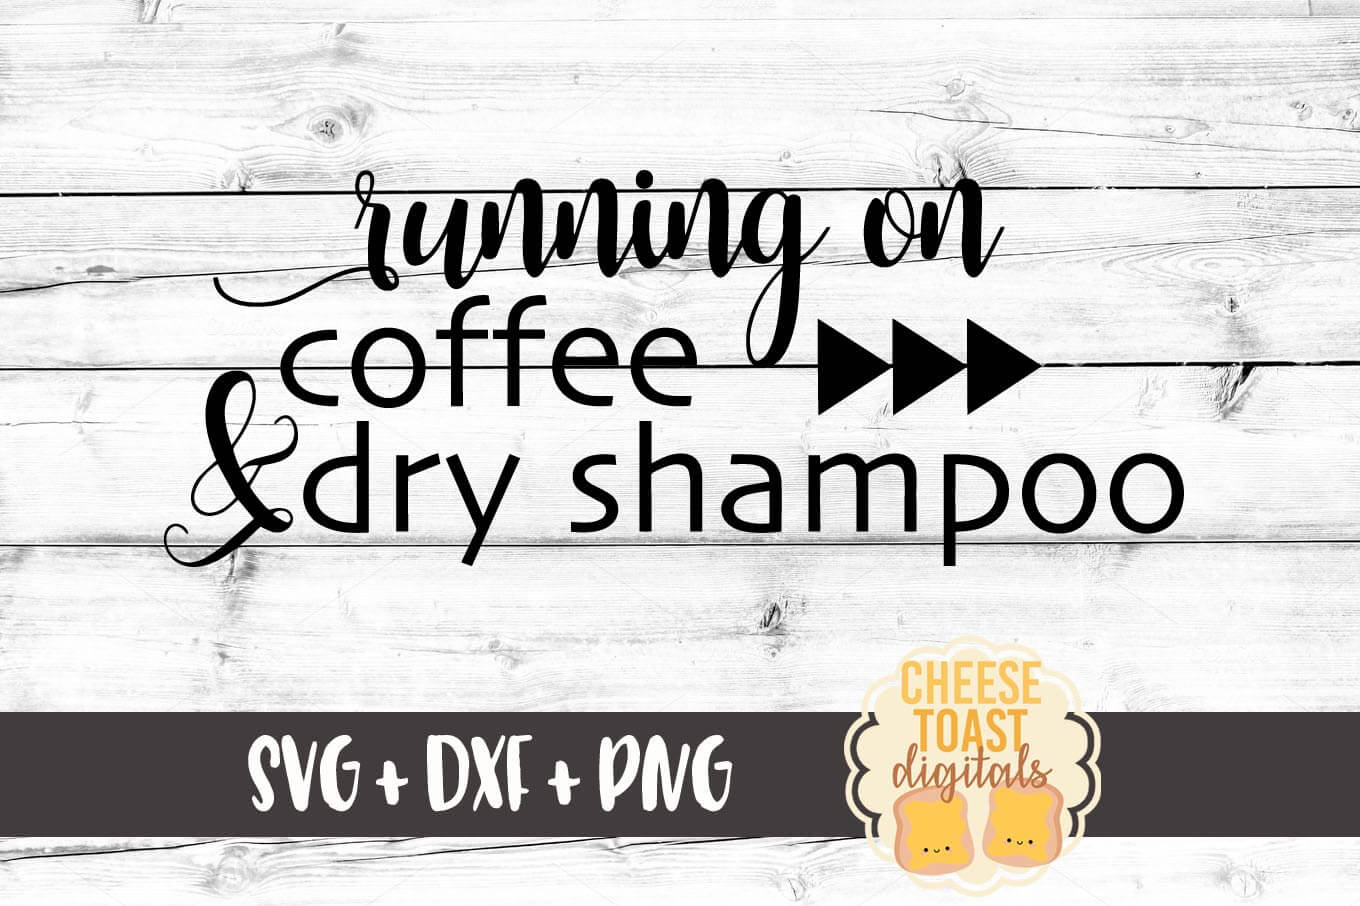 Download Free Running On Coffee Dry Shampoo Graphic By Cheesetoastdigitals for Cricut Explore, Silhouette and other cutting machines.